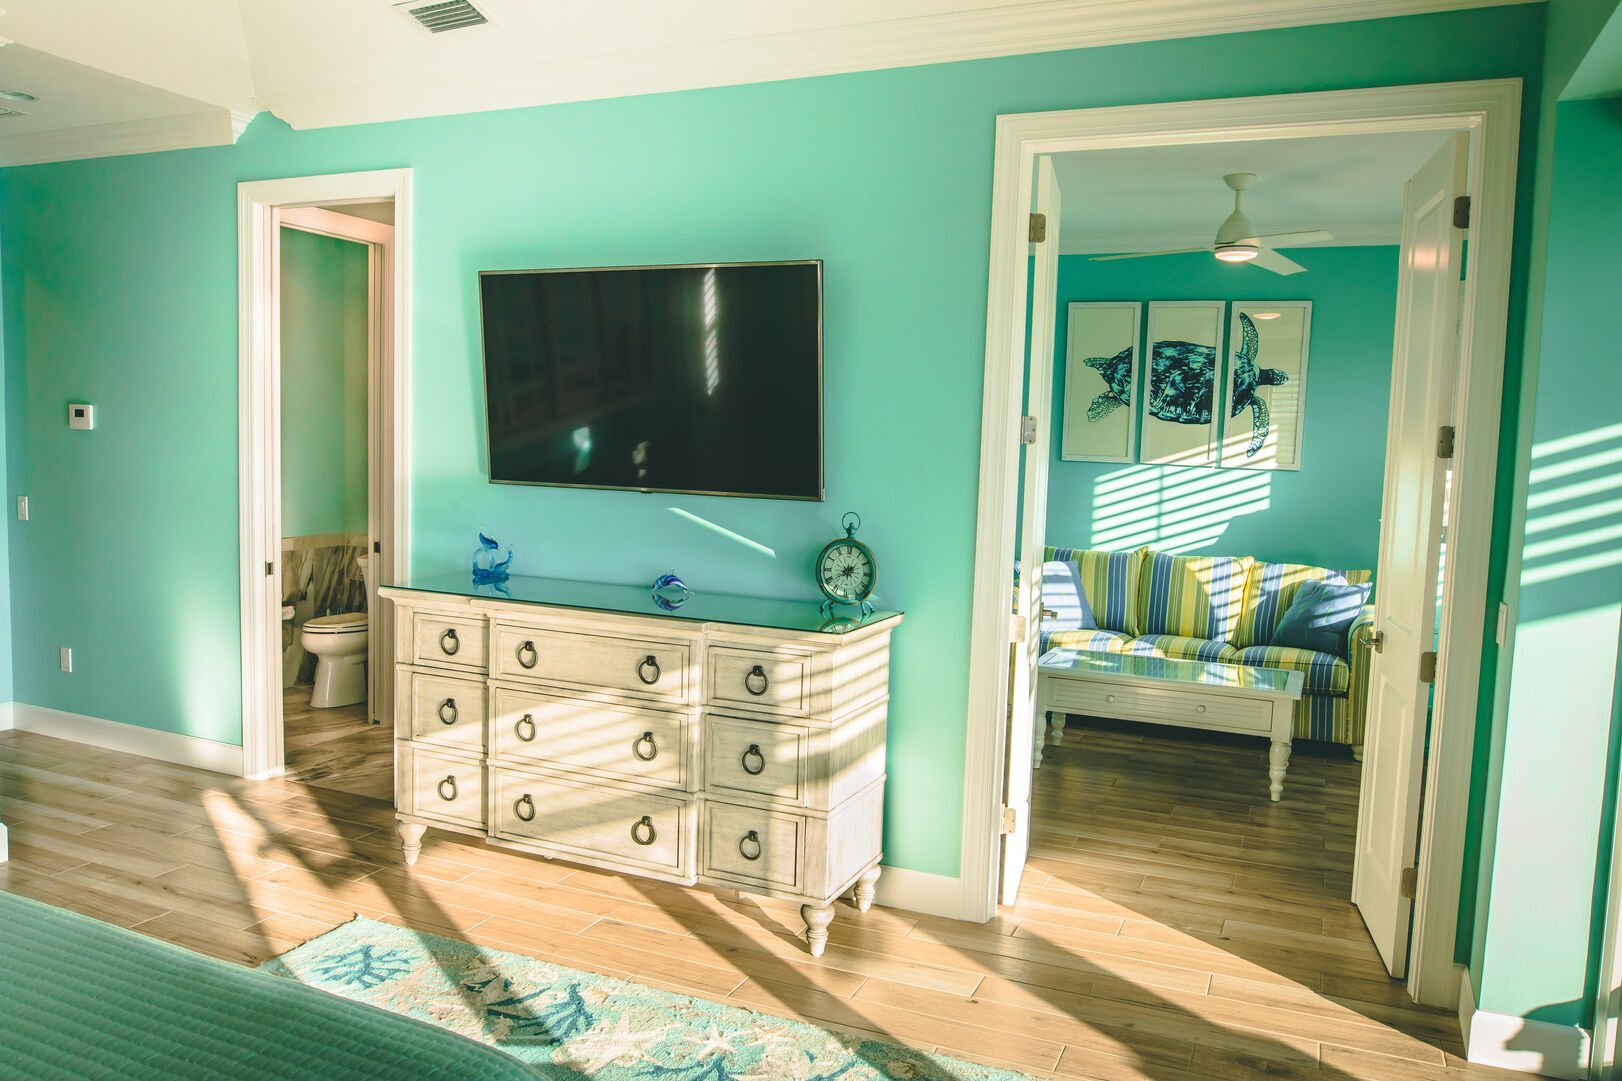 Wall-mounted TV sits above a dresser between doors to a bathroom and a small living area.